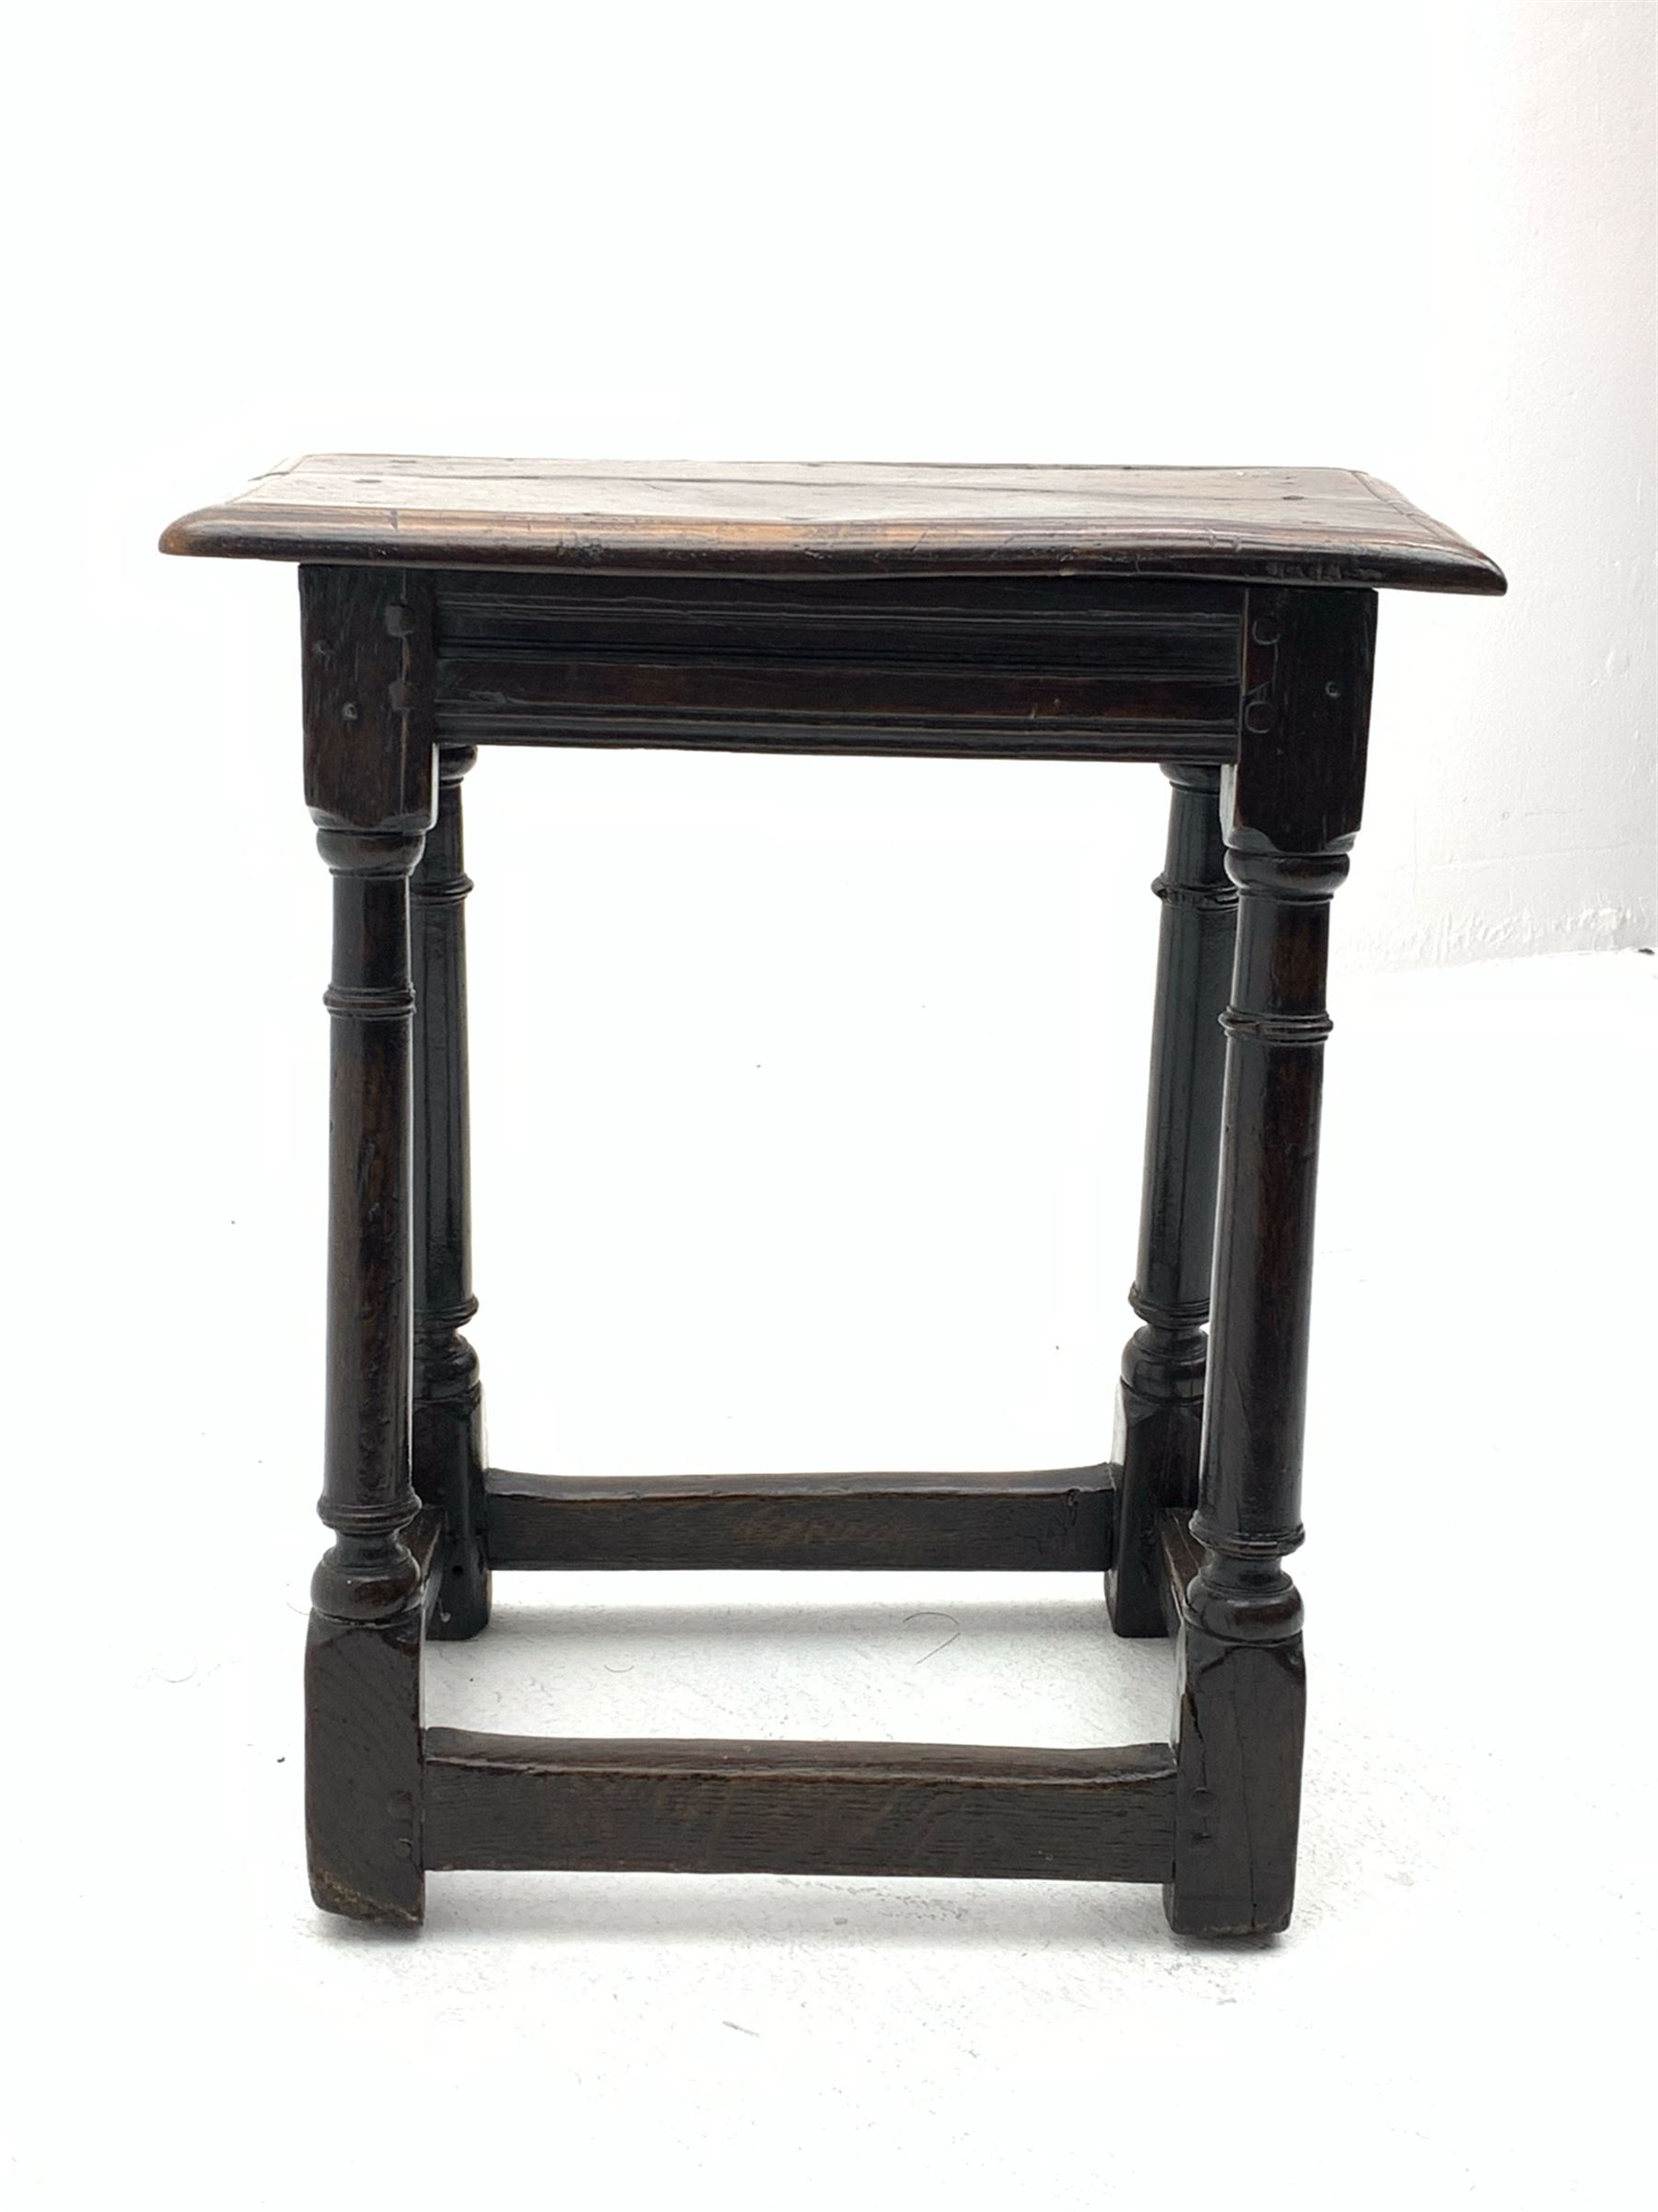 Late 17th century oak joined stool - Image 4 of 8